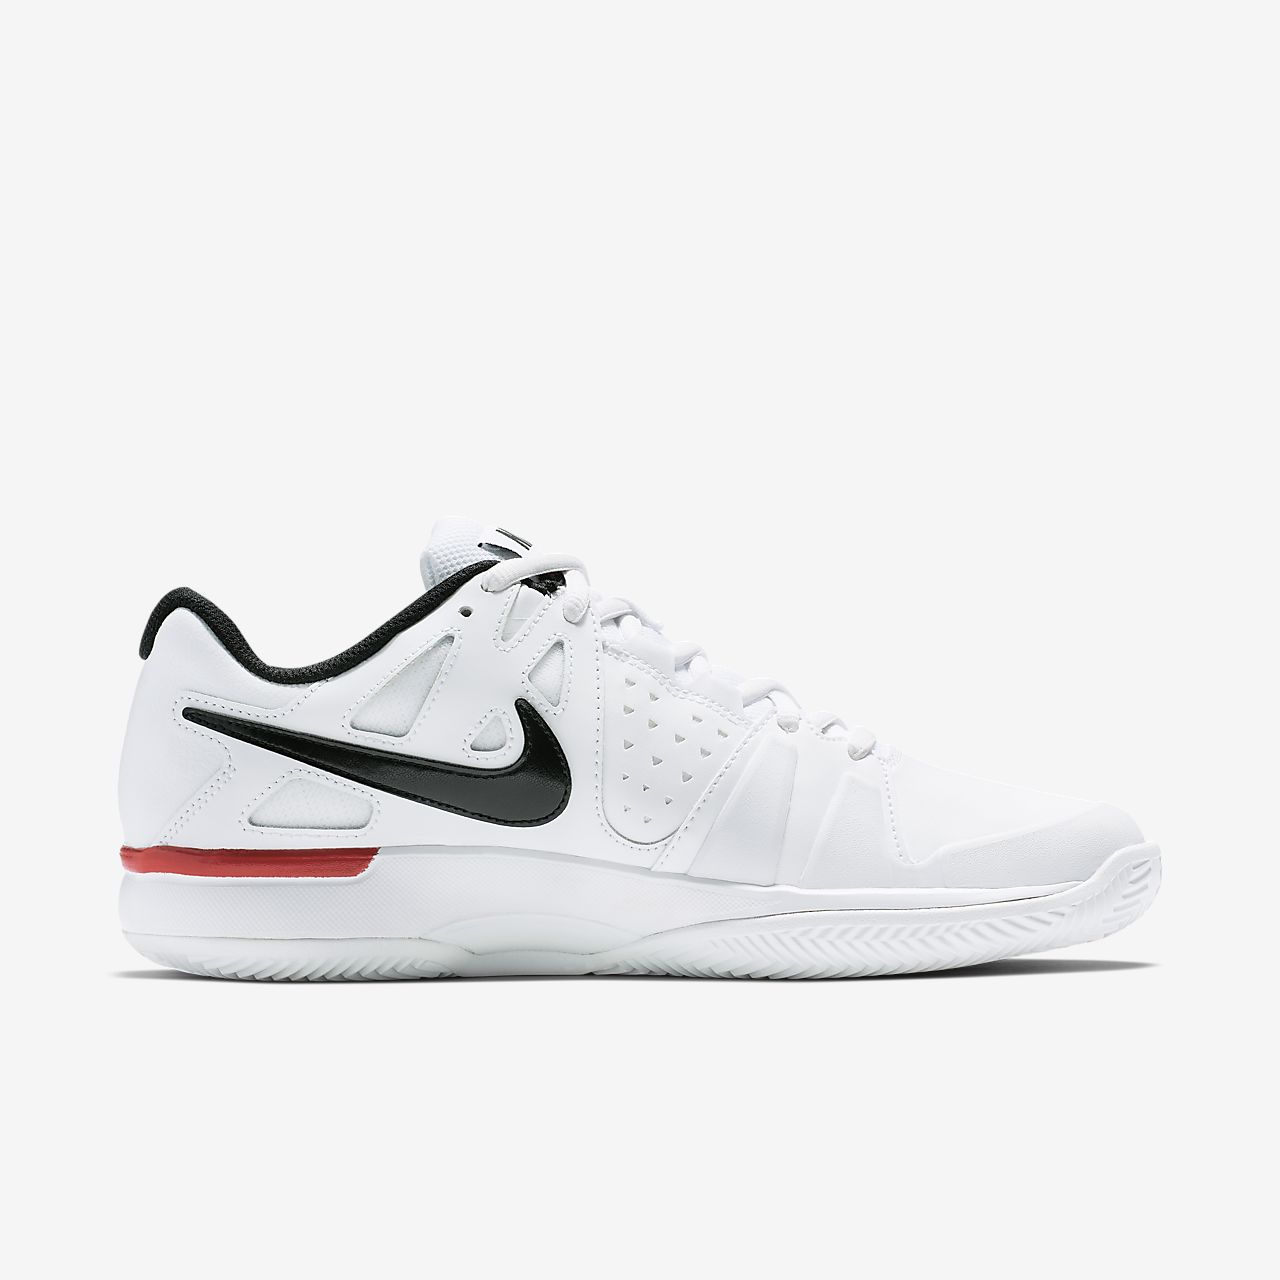 Nike Air Vapor Advantage Mens White/Black/University Red D301902AC Shoes